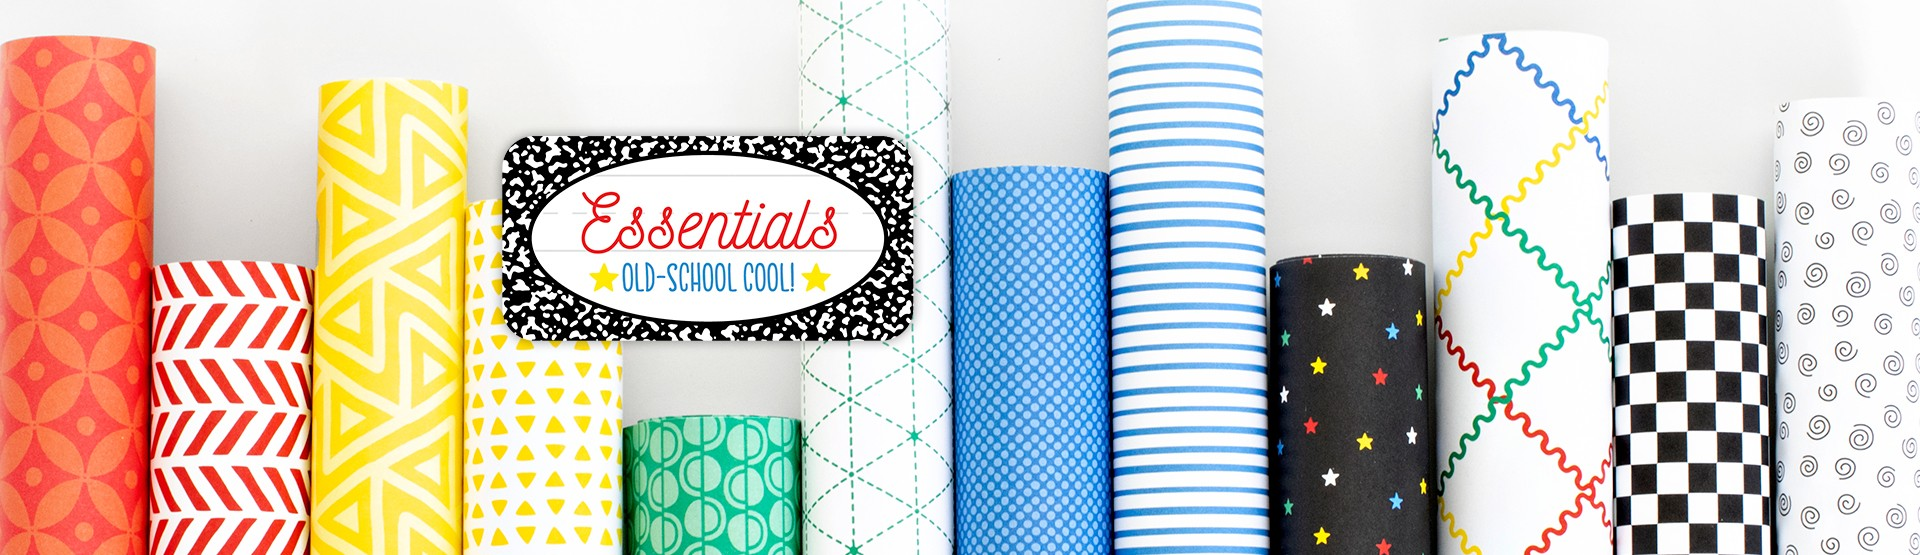 All Occasions & School: Essentials